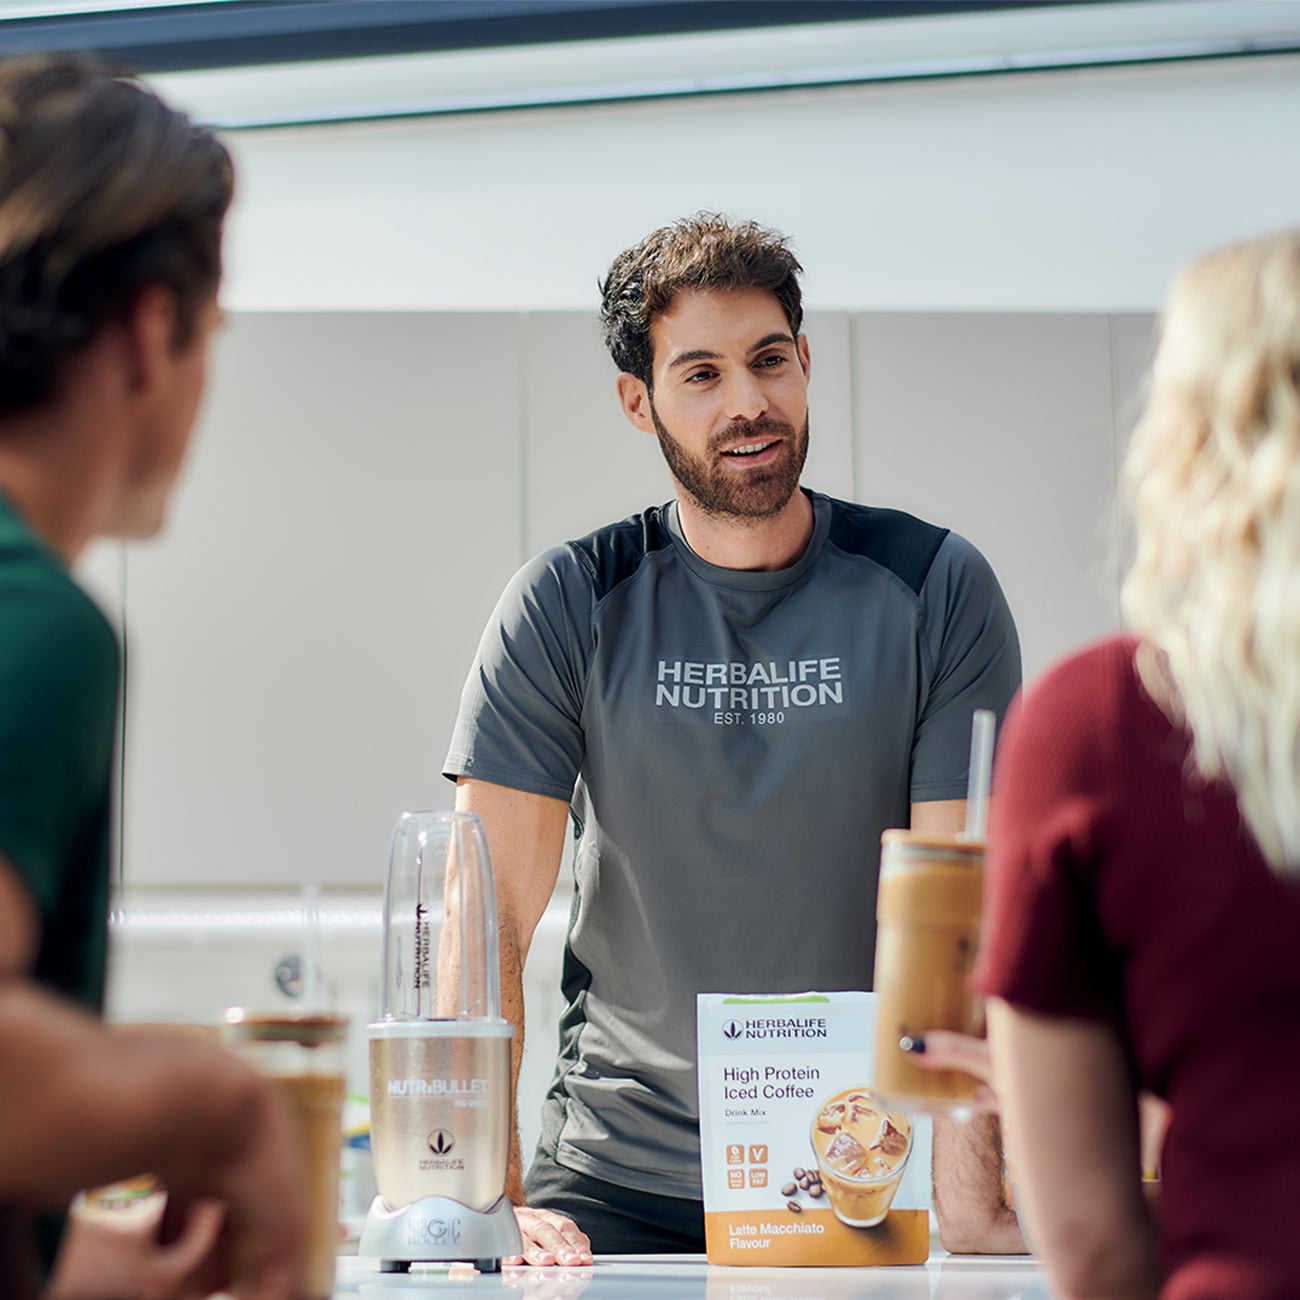 herbalife nutrition coach talking to his customers in a nutrition club